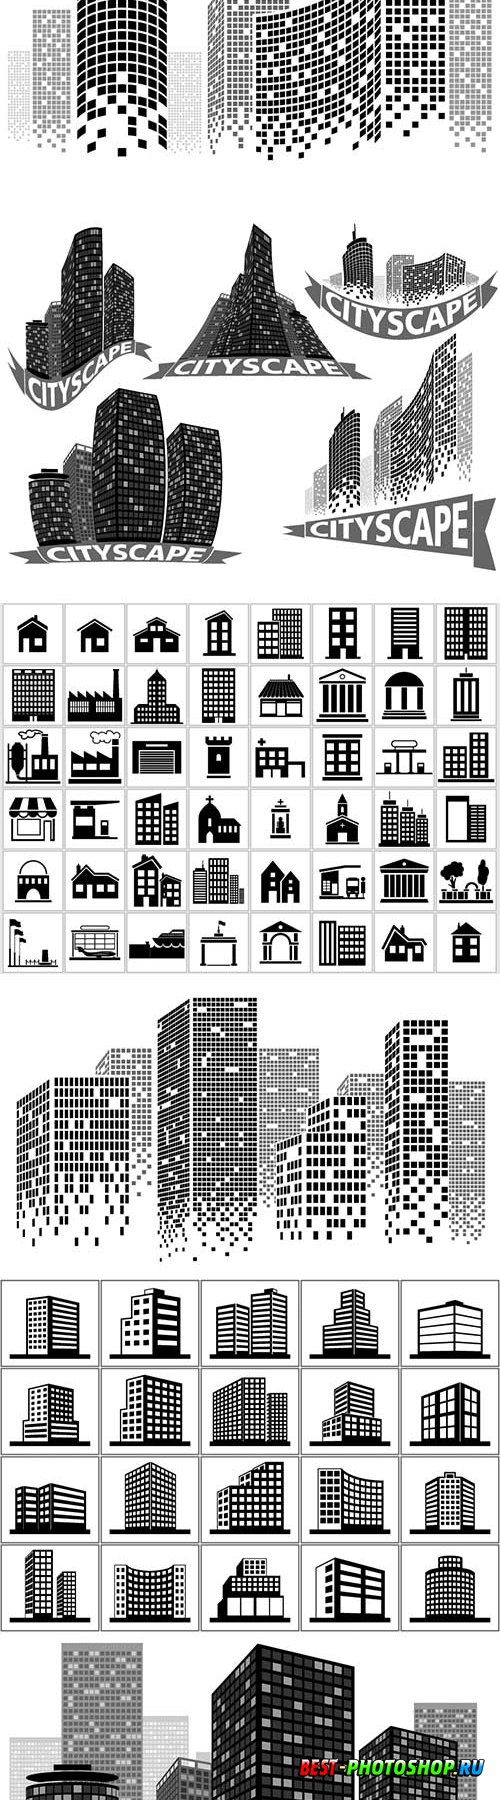 Cityscape set - buildings and city scene illustrations vector